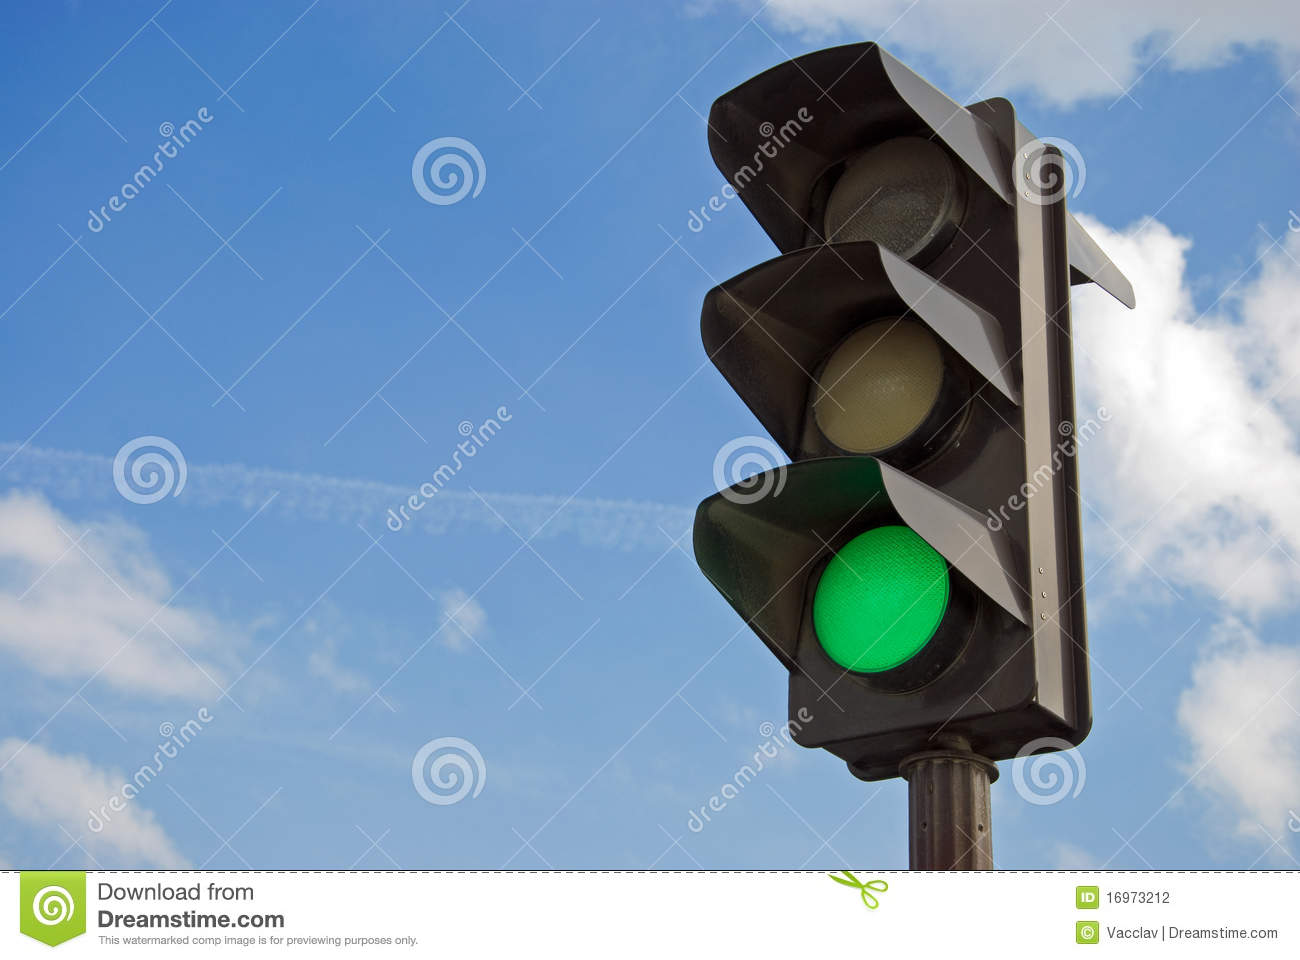 Green color on the traffic light